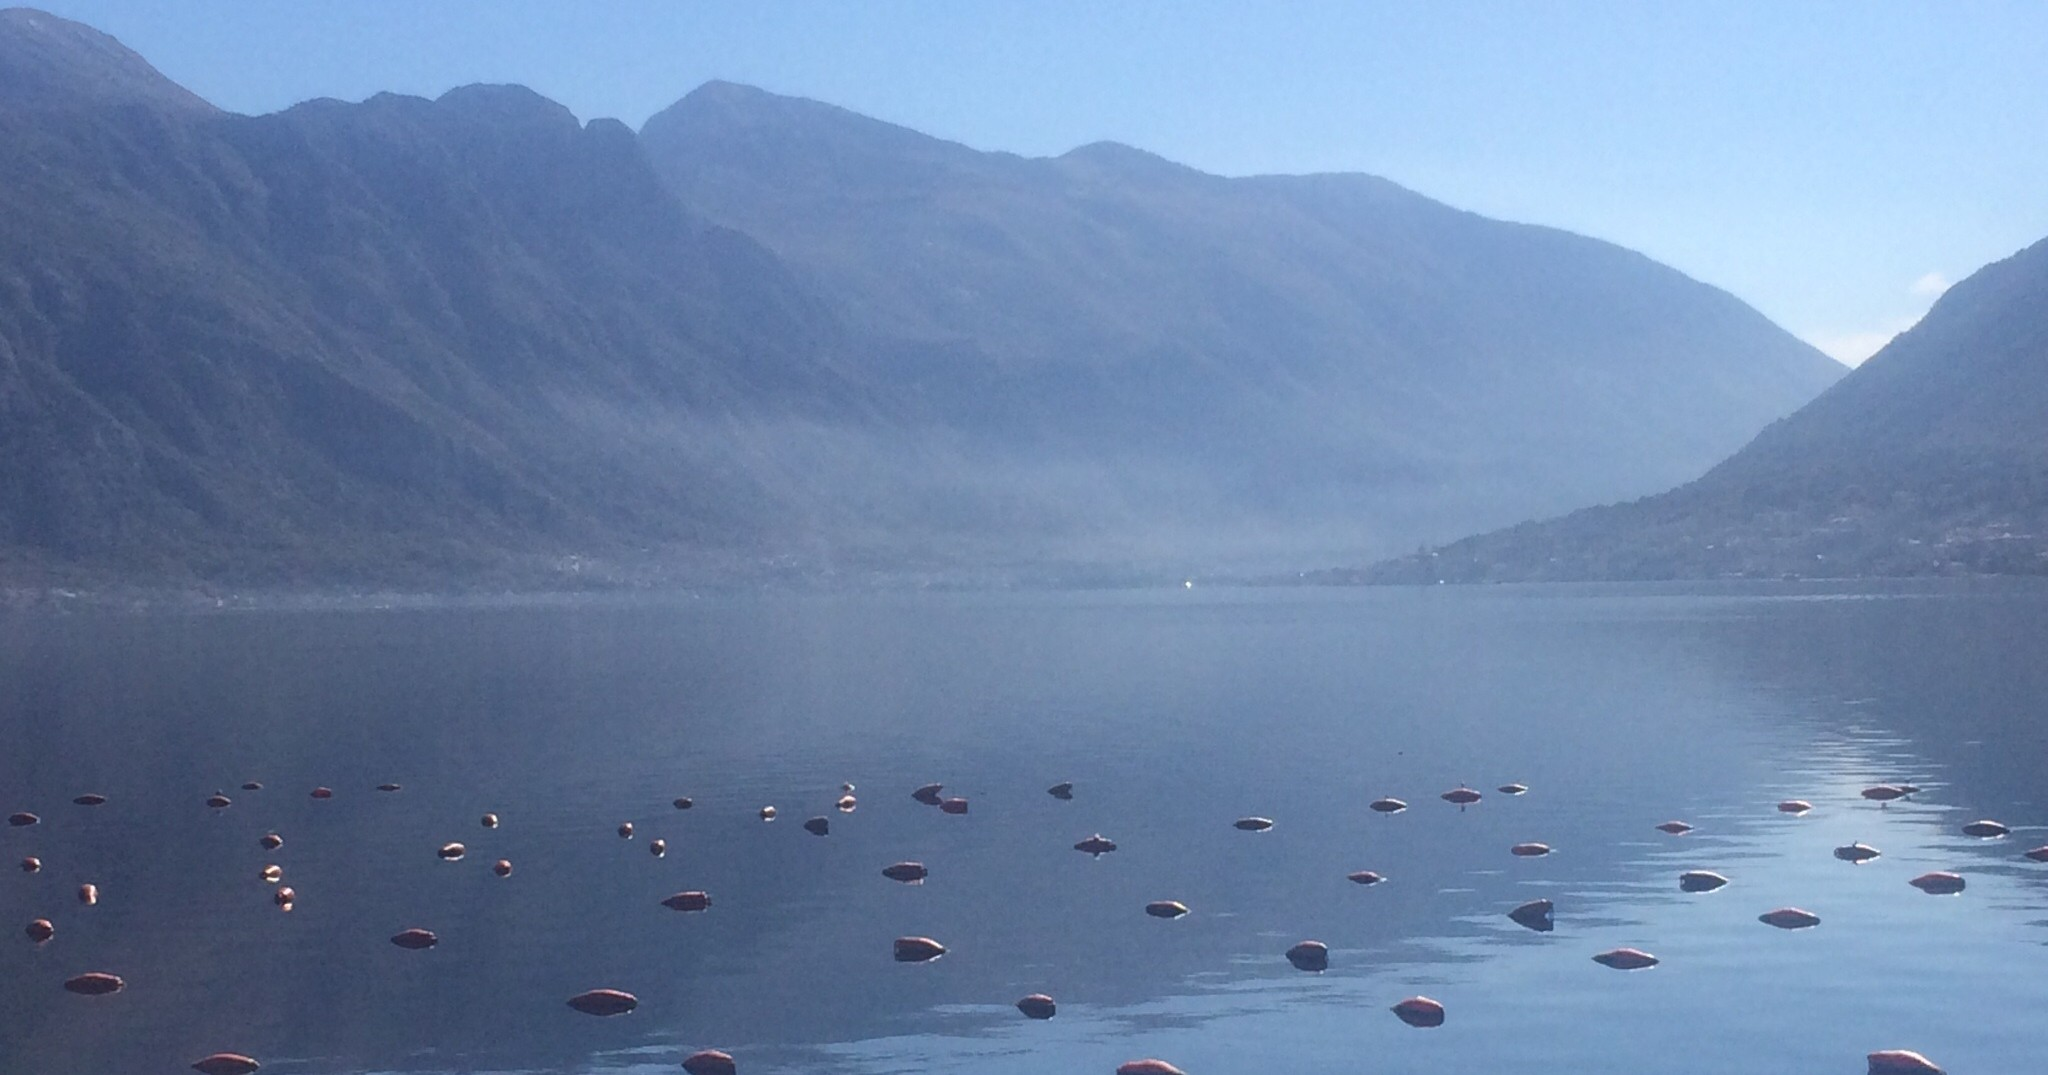 Cycle Touring Tips for Montenegro